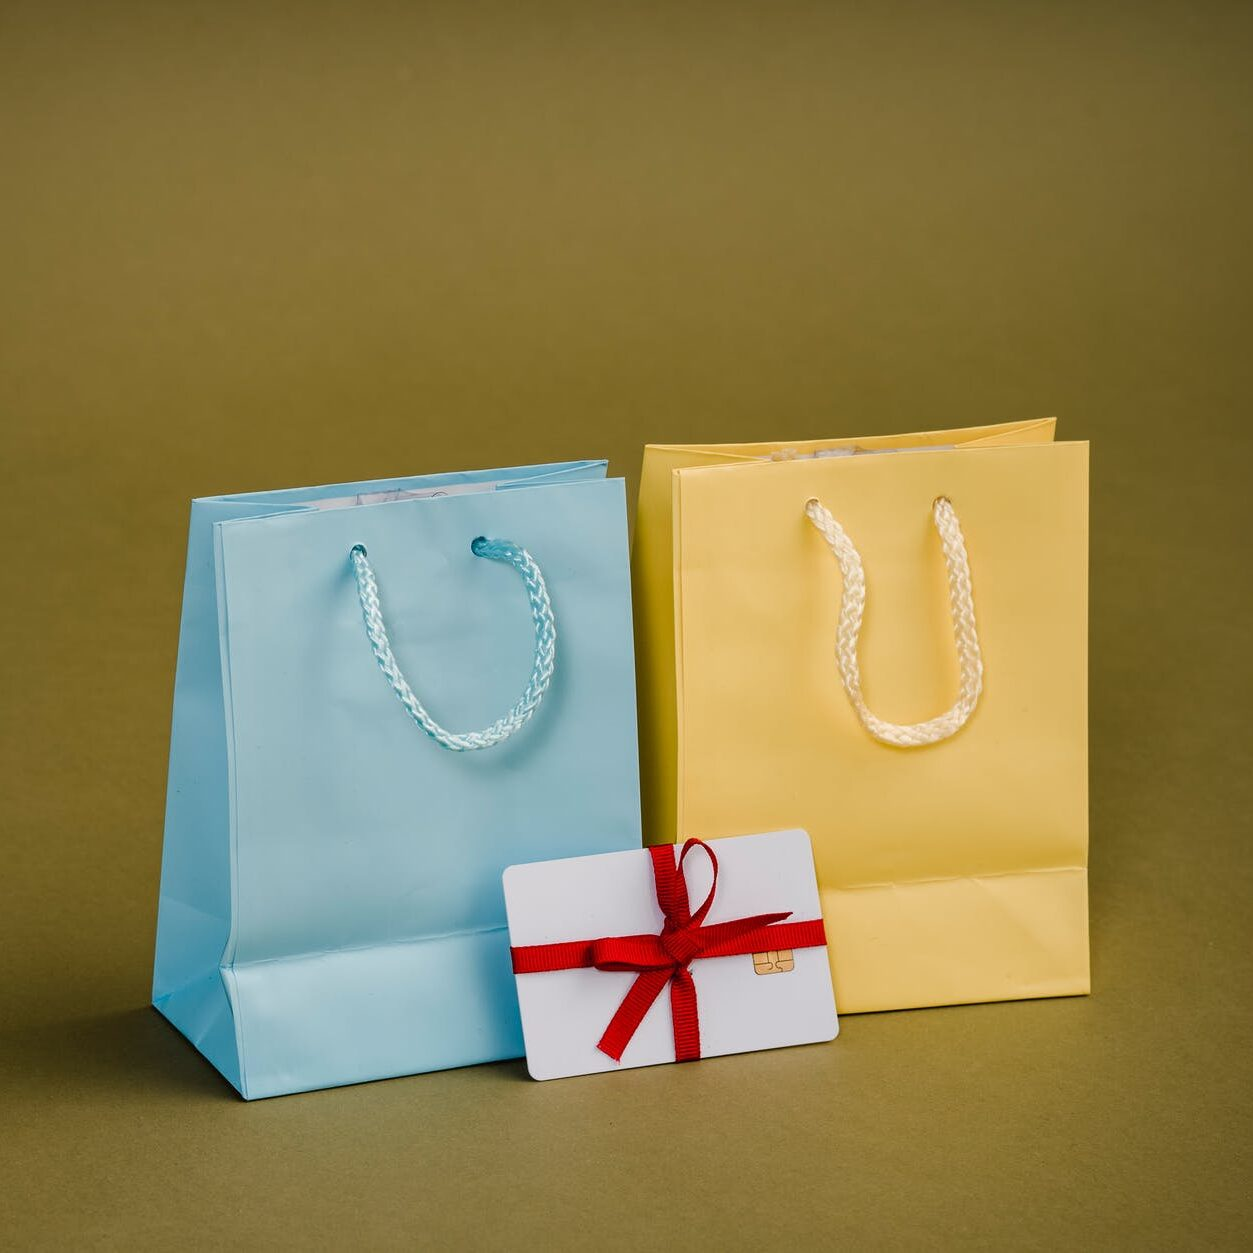 assorted gift bags with cords on brown background